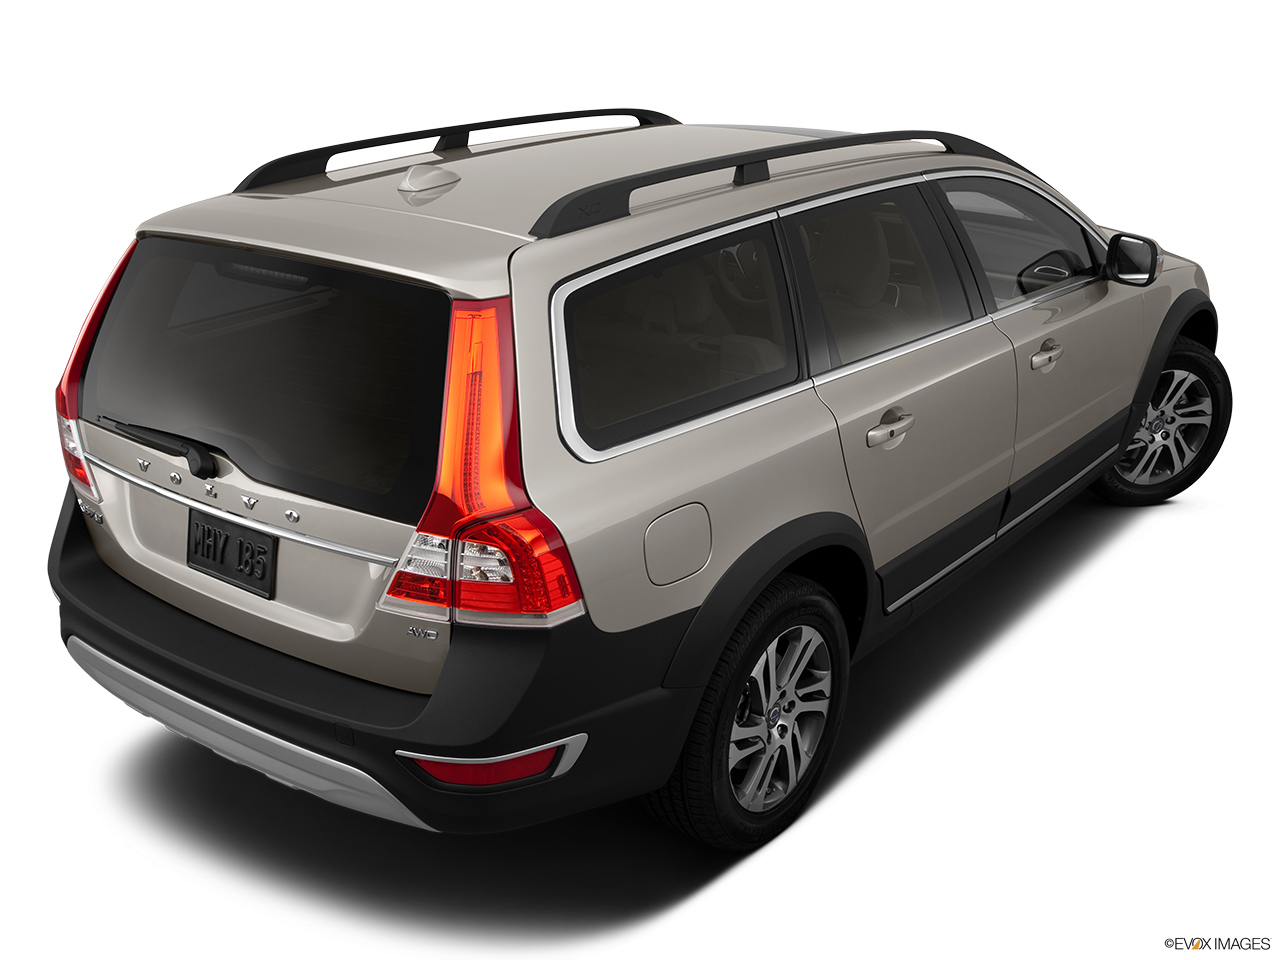 2014 Volvo XC70 3.2 AWD Premier Plus Rear 3/4 angle view.